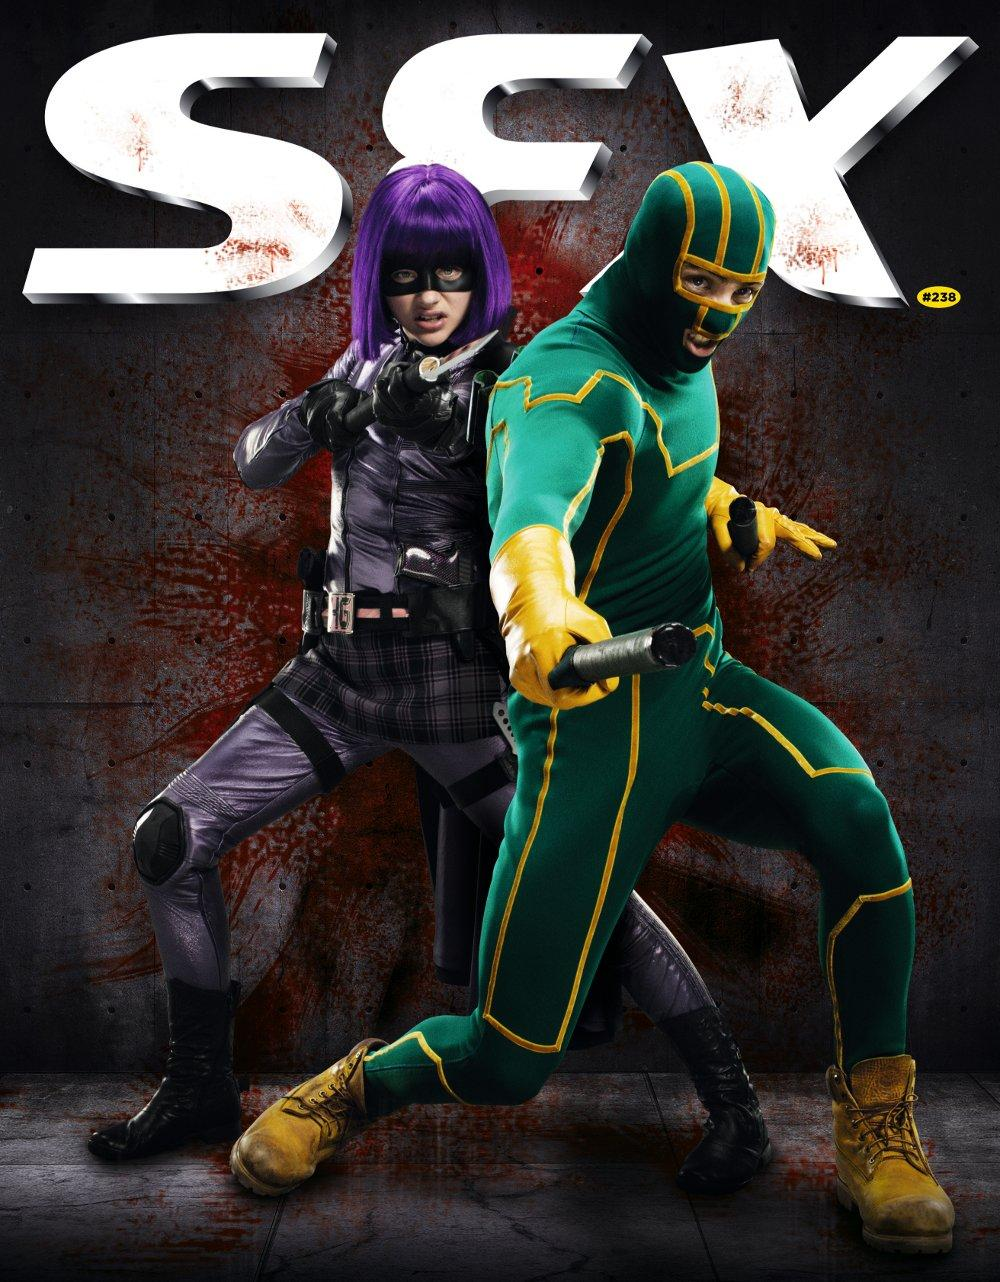 kick-ass 2 promo photo sfx